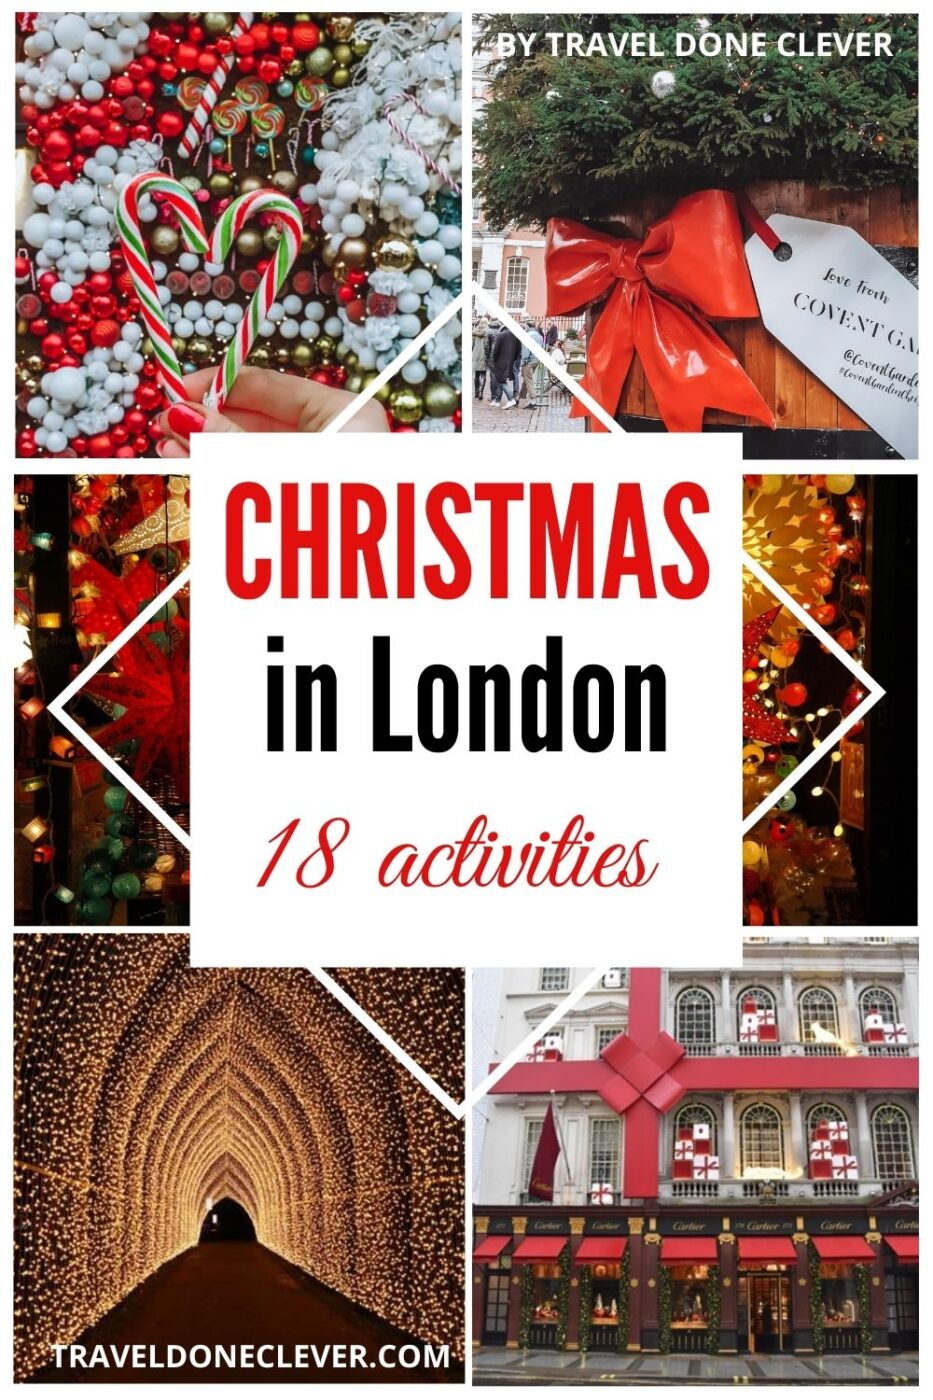 Make your Christmas in London as magical as possible. Visit the top 18 best festive attractions and Chrismassy spots in London to get into the festive spirit!